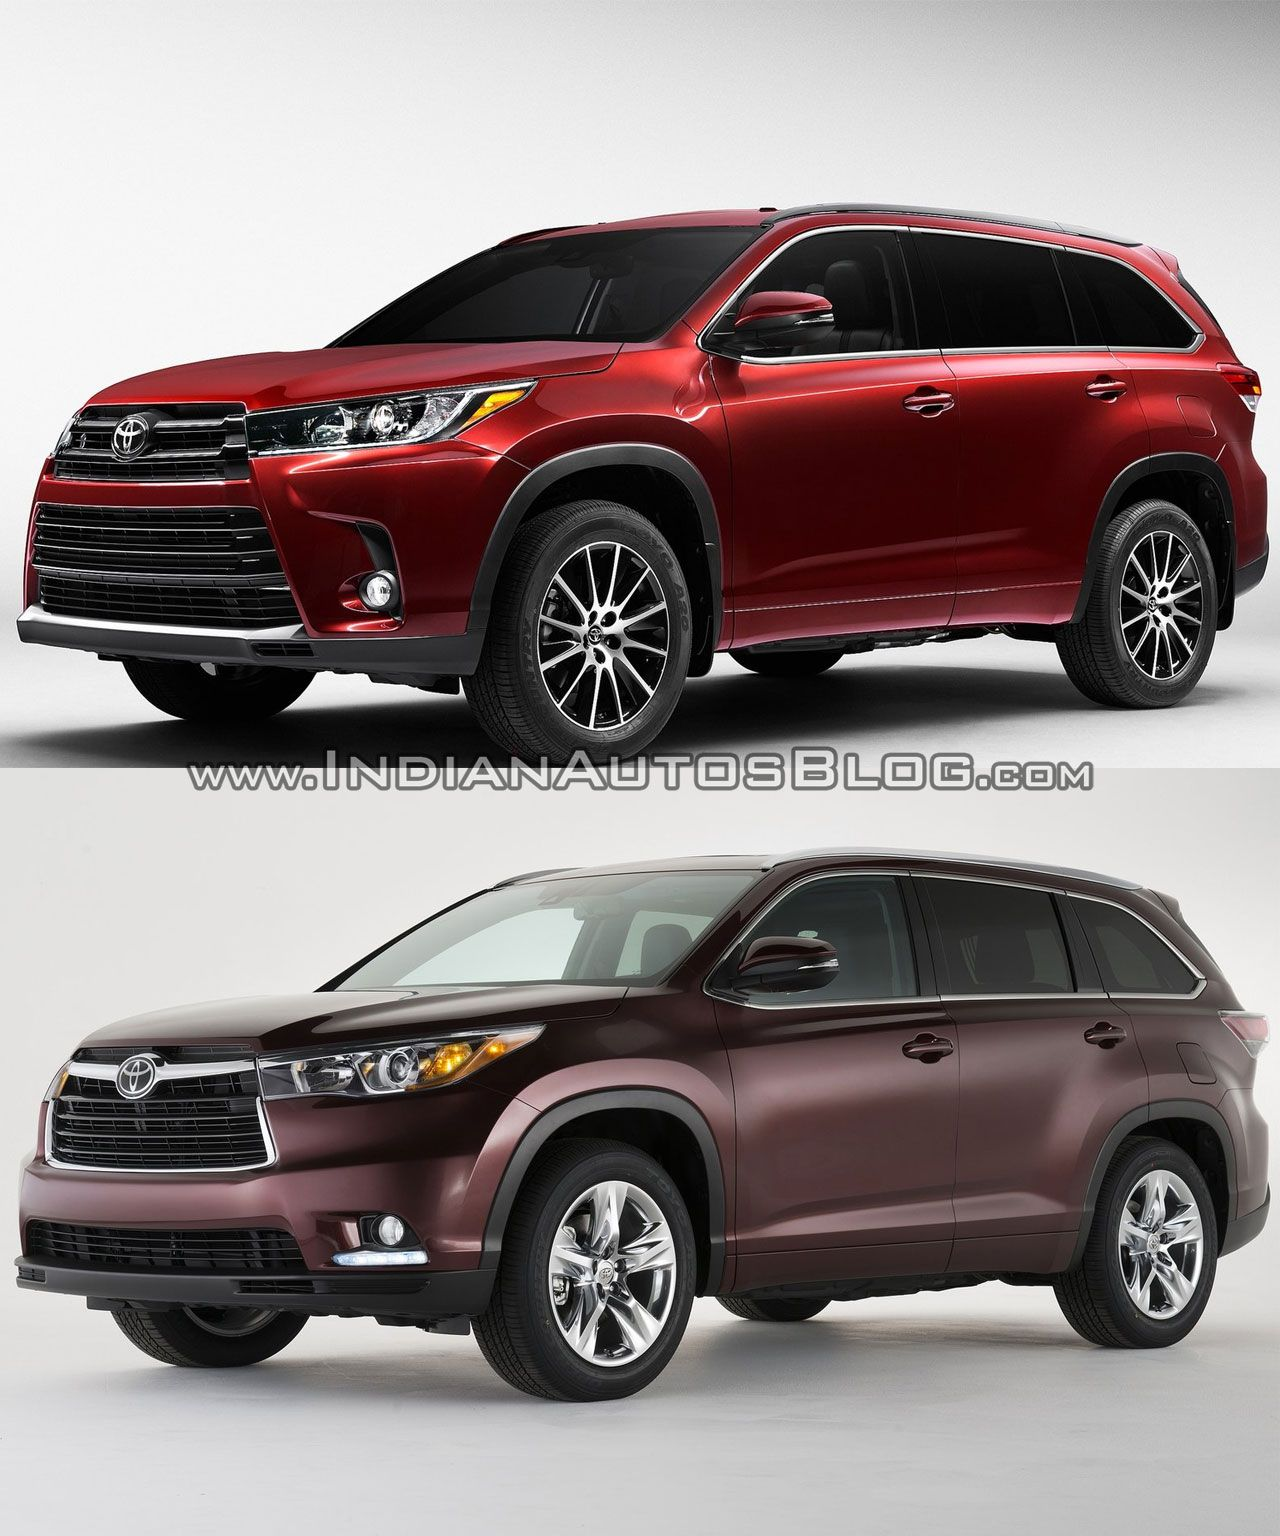 2017 Toyota Highlander Vs In Images